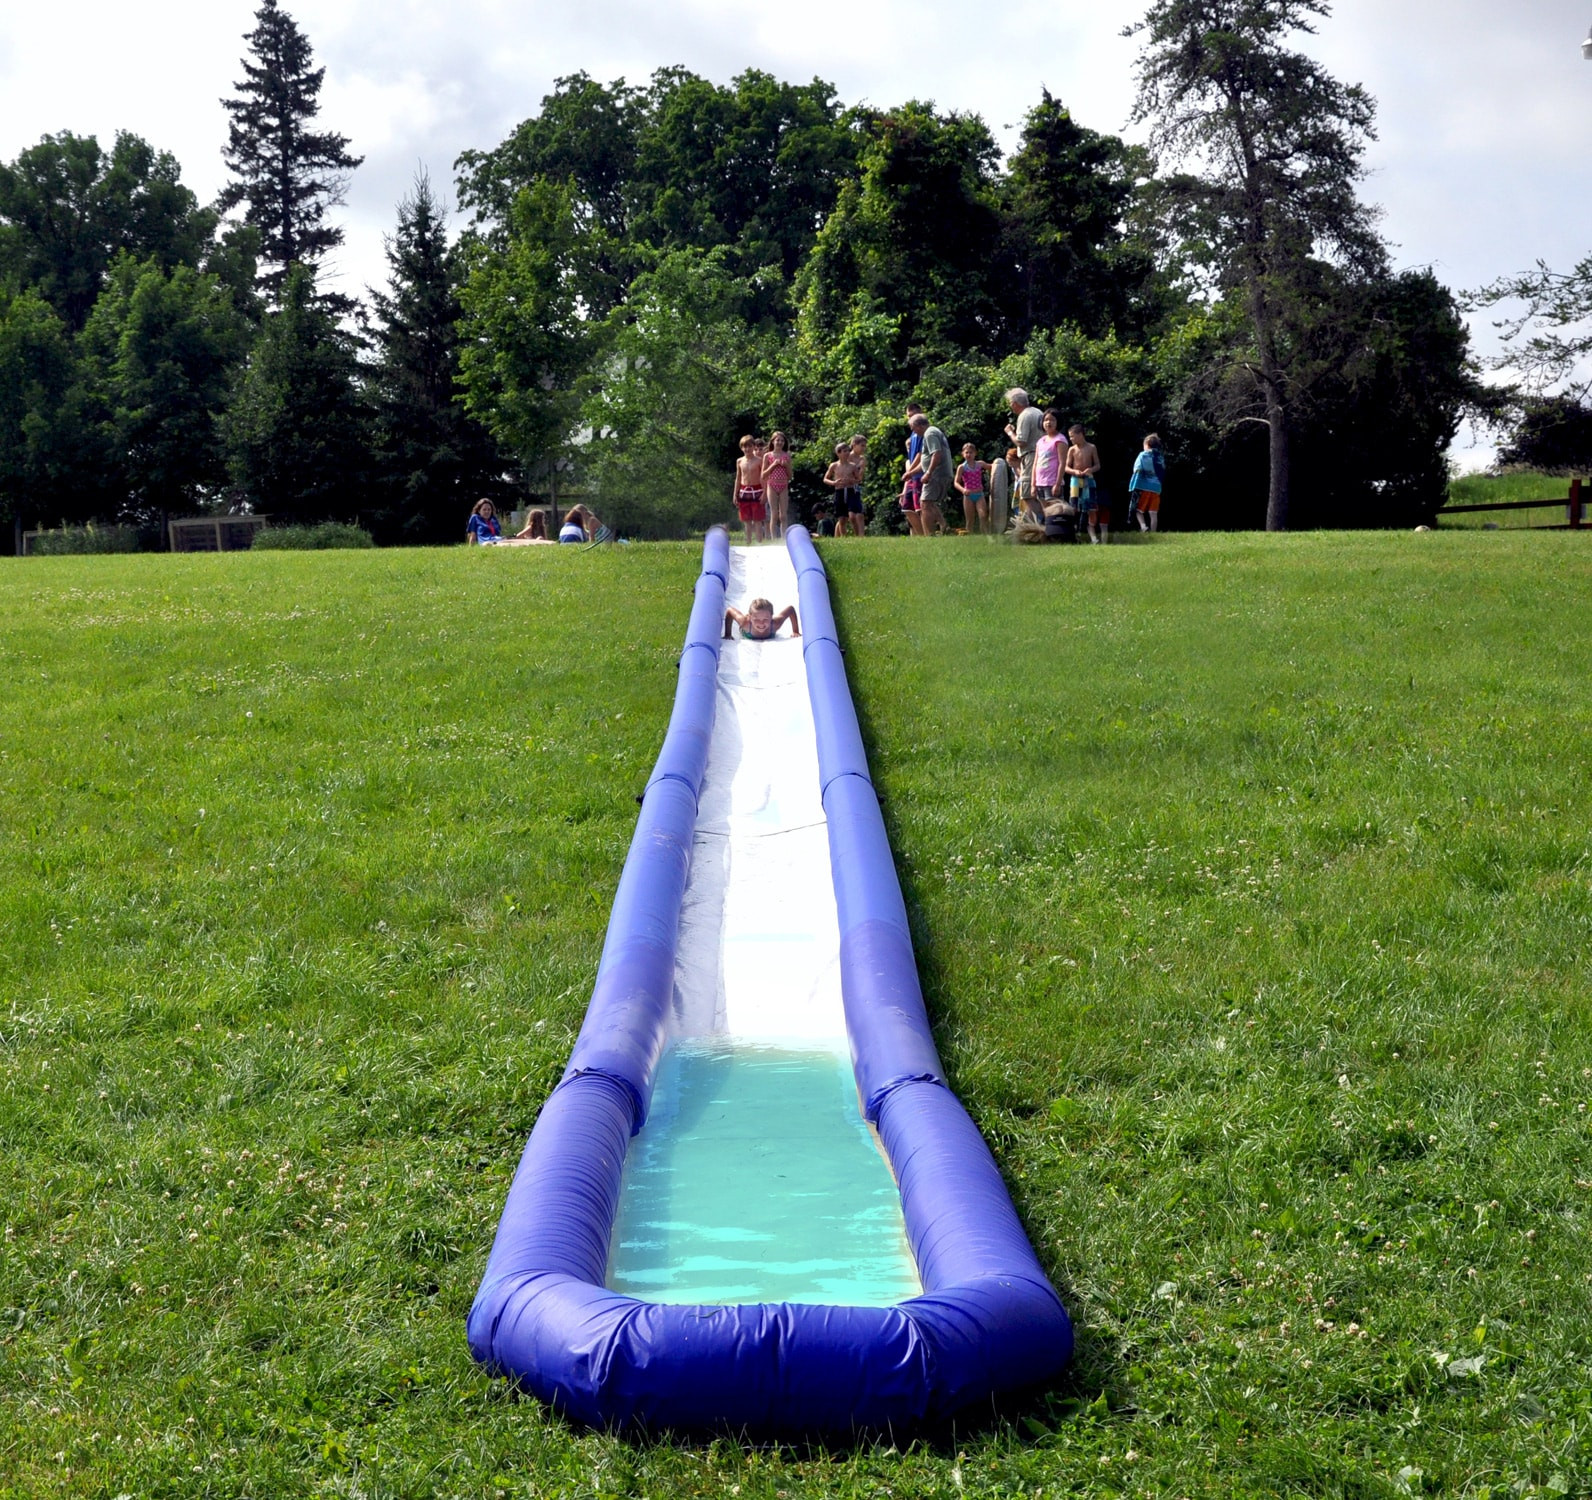 Backyard Water Slides For Sale  Rave Turbo Chute Water Slide Backyard Hill Package